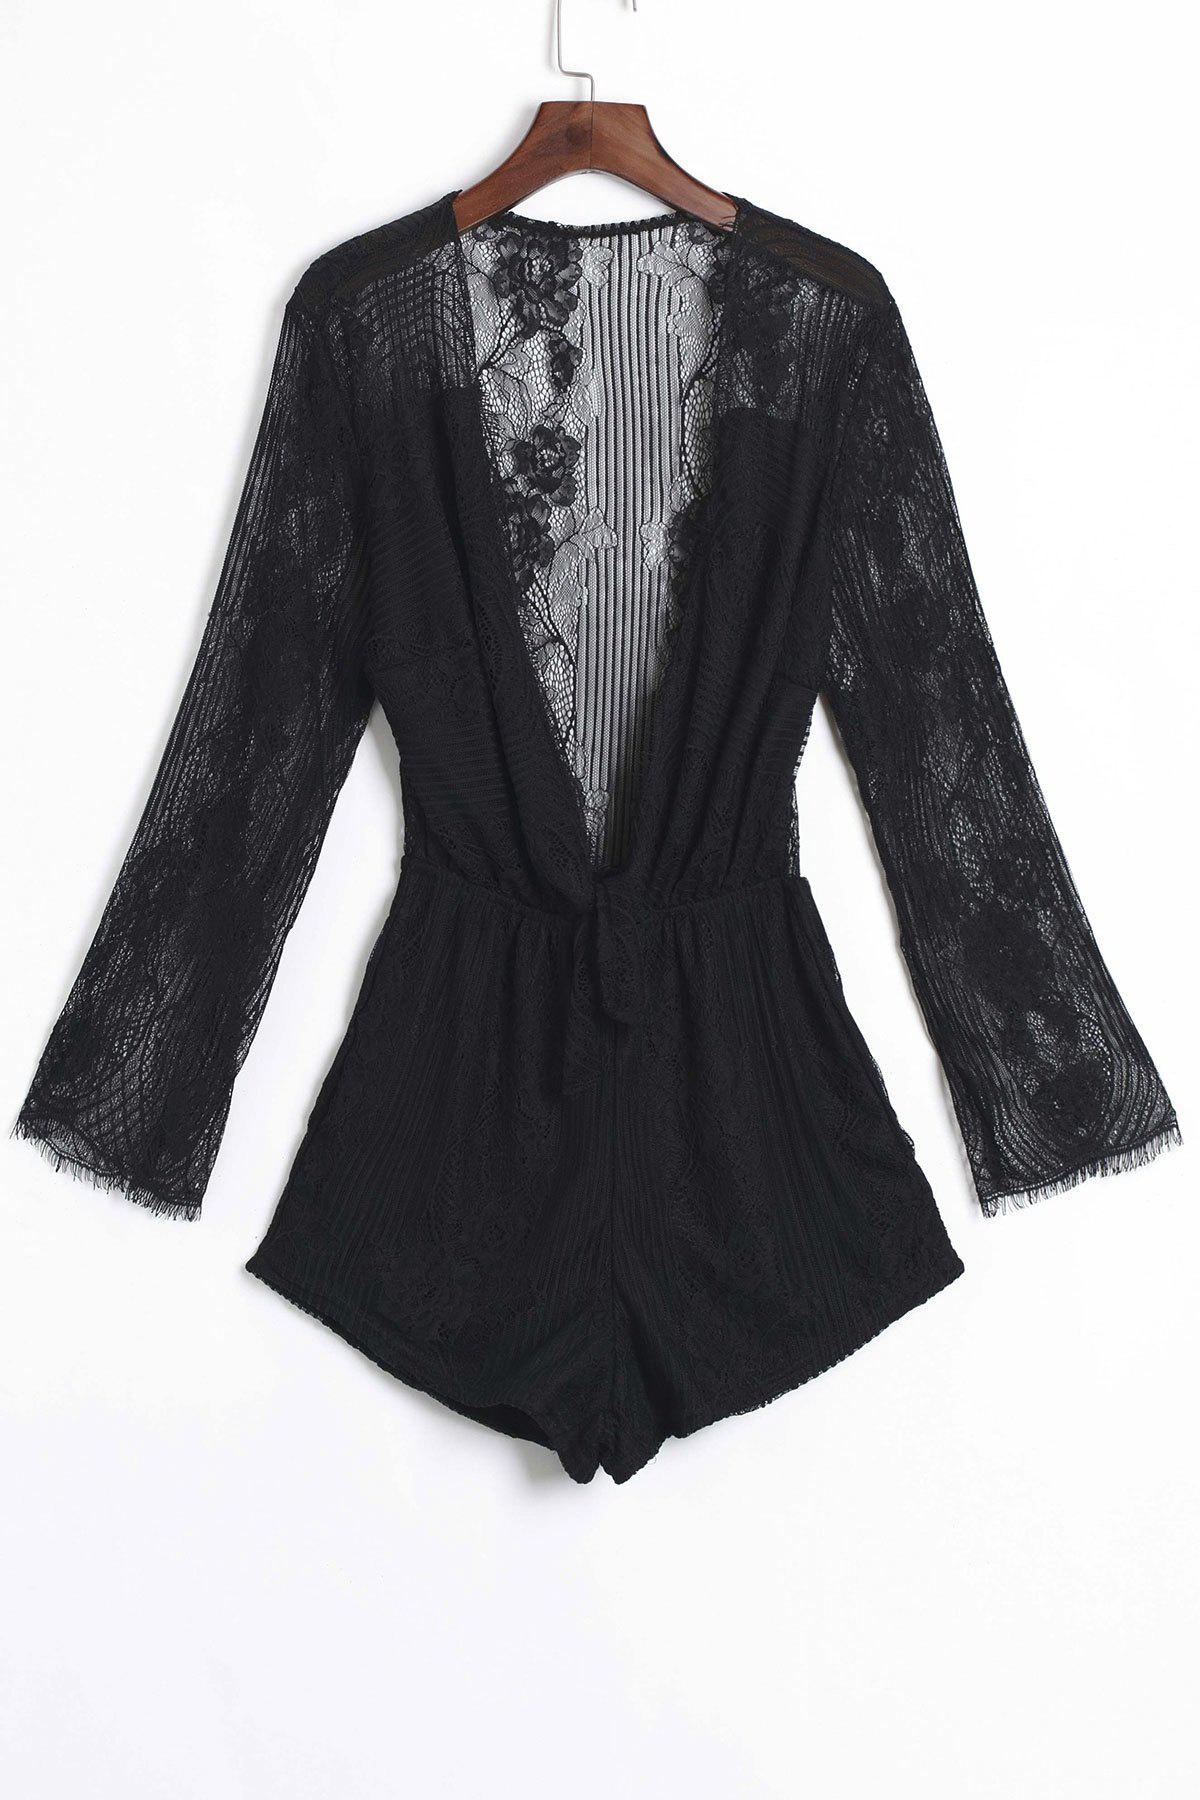 Sexy Plunging Neck See-Through Lace Spliced Flounce Romper For Women - BLACK ONE SIZE(FIT SIZE XS TO M)